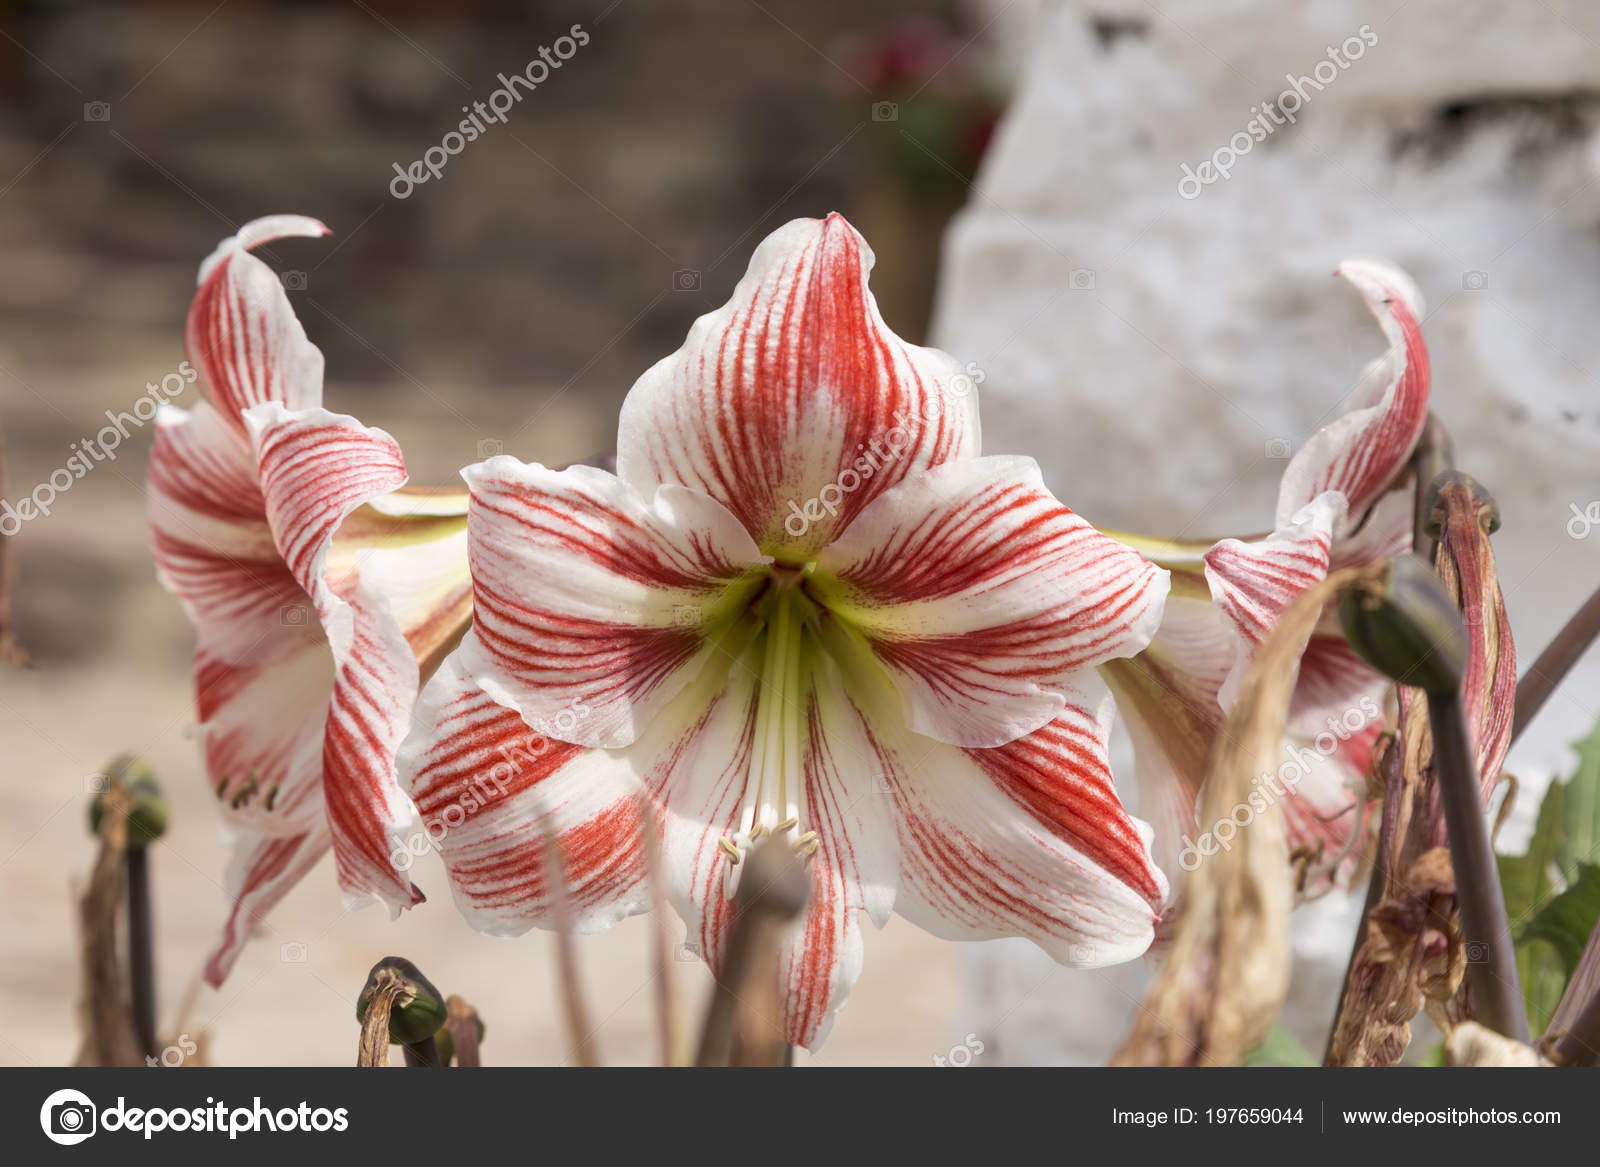 Close Shot Three Striped Lilies Fragrant Flowers Variety Red White